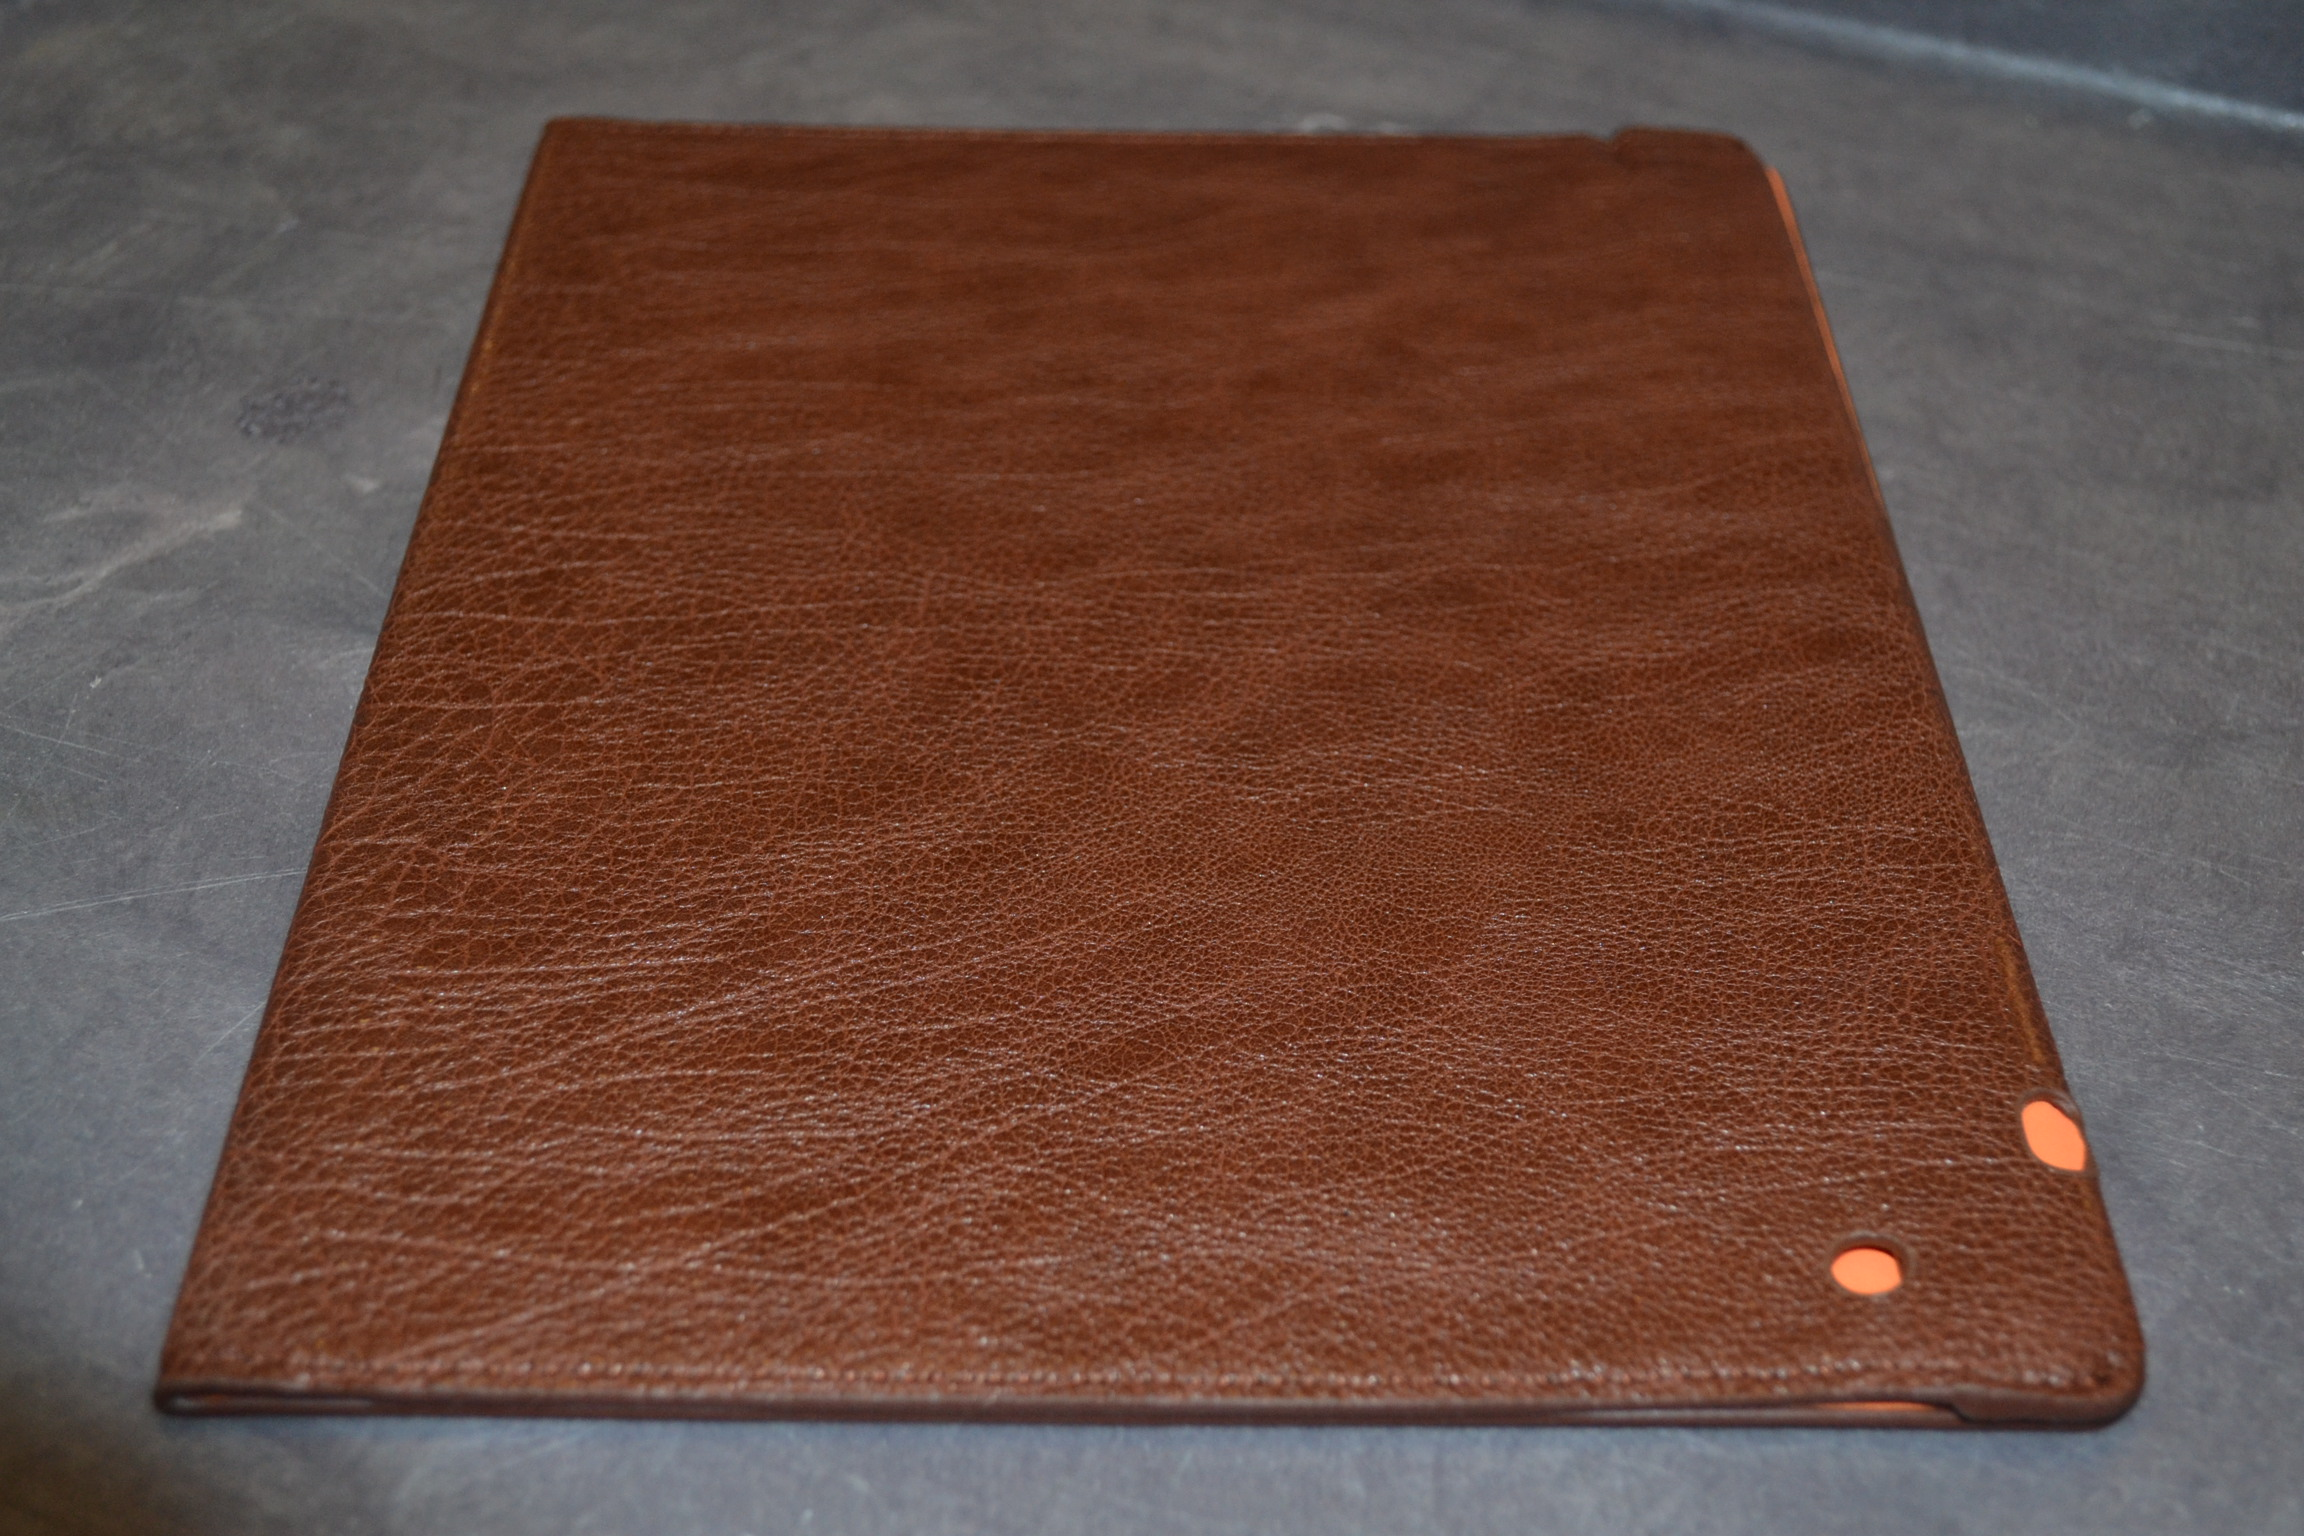 Forward Industries Inc Slim Cover For iPad 2 3 Brown FCTPF16BN Case Folding Foli